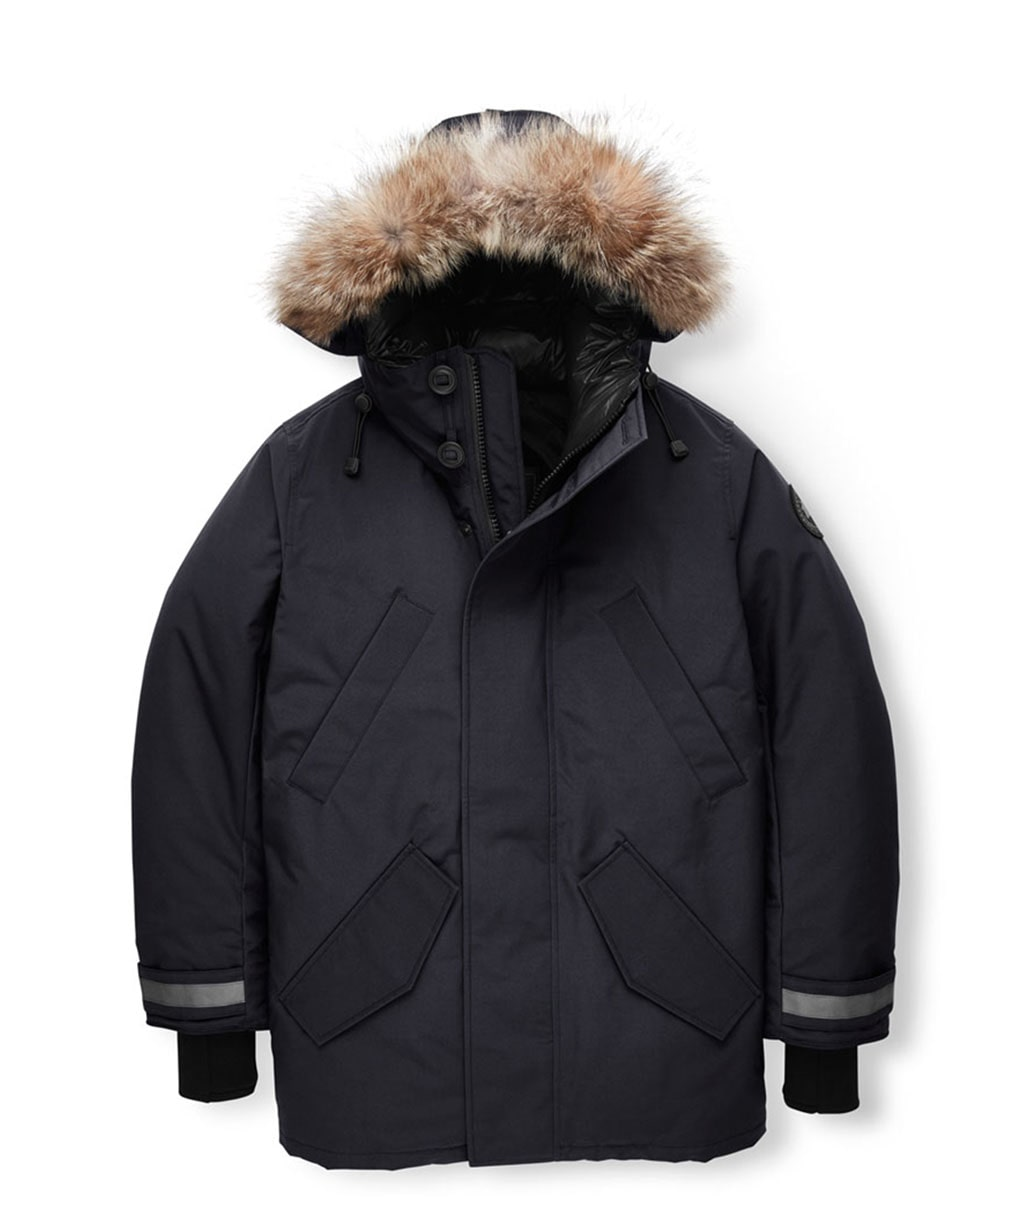 EDGEWOOD PARKA BLACK LABEL